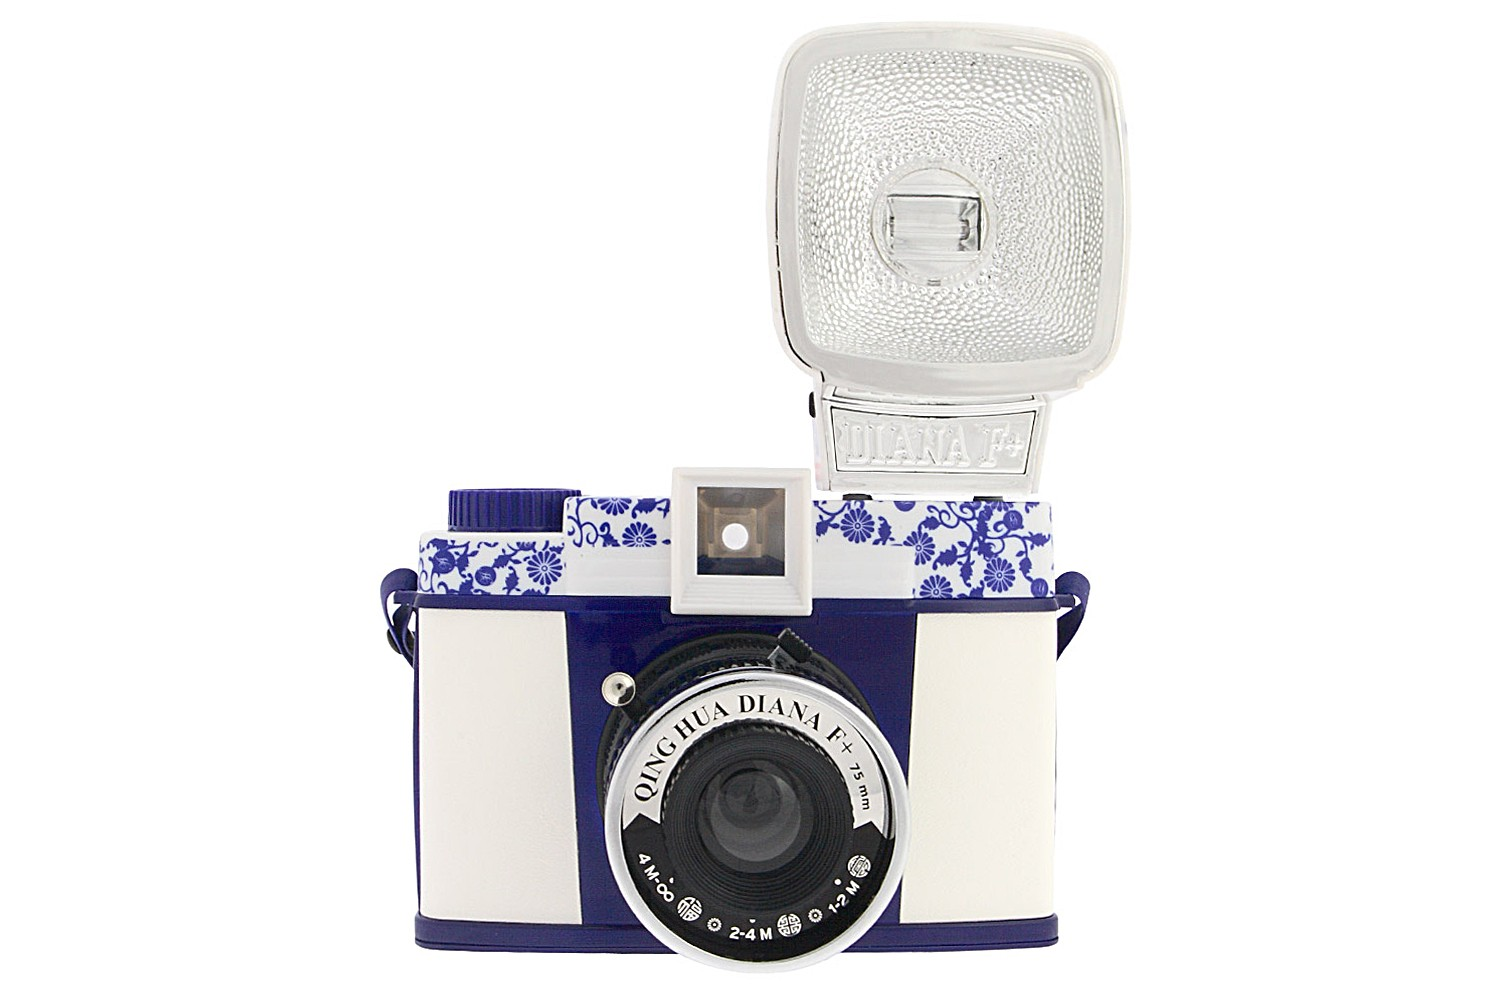 Diana F+ Camera and Flash (Qing Hua Edition)